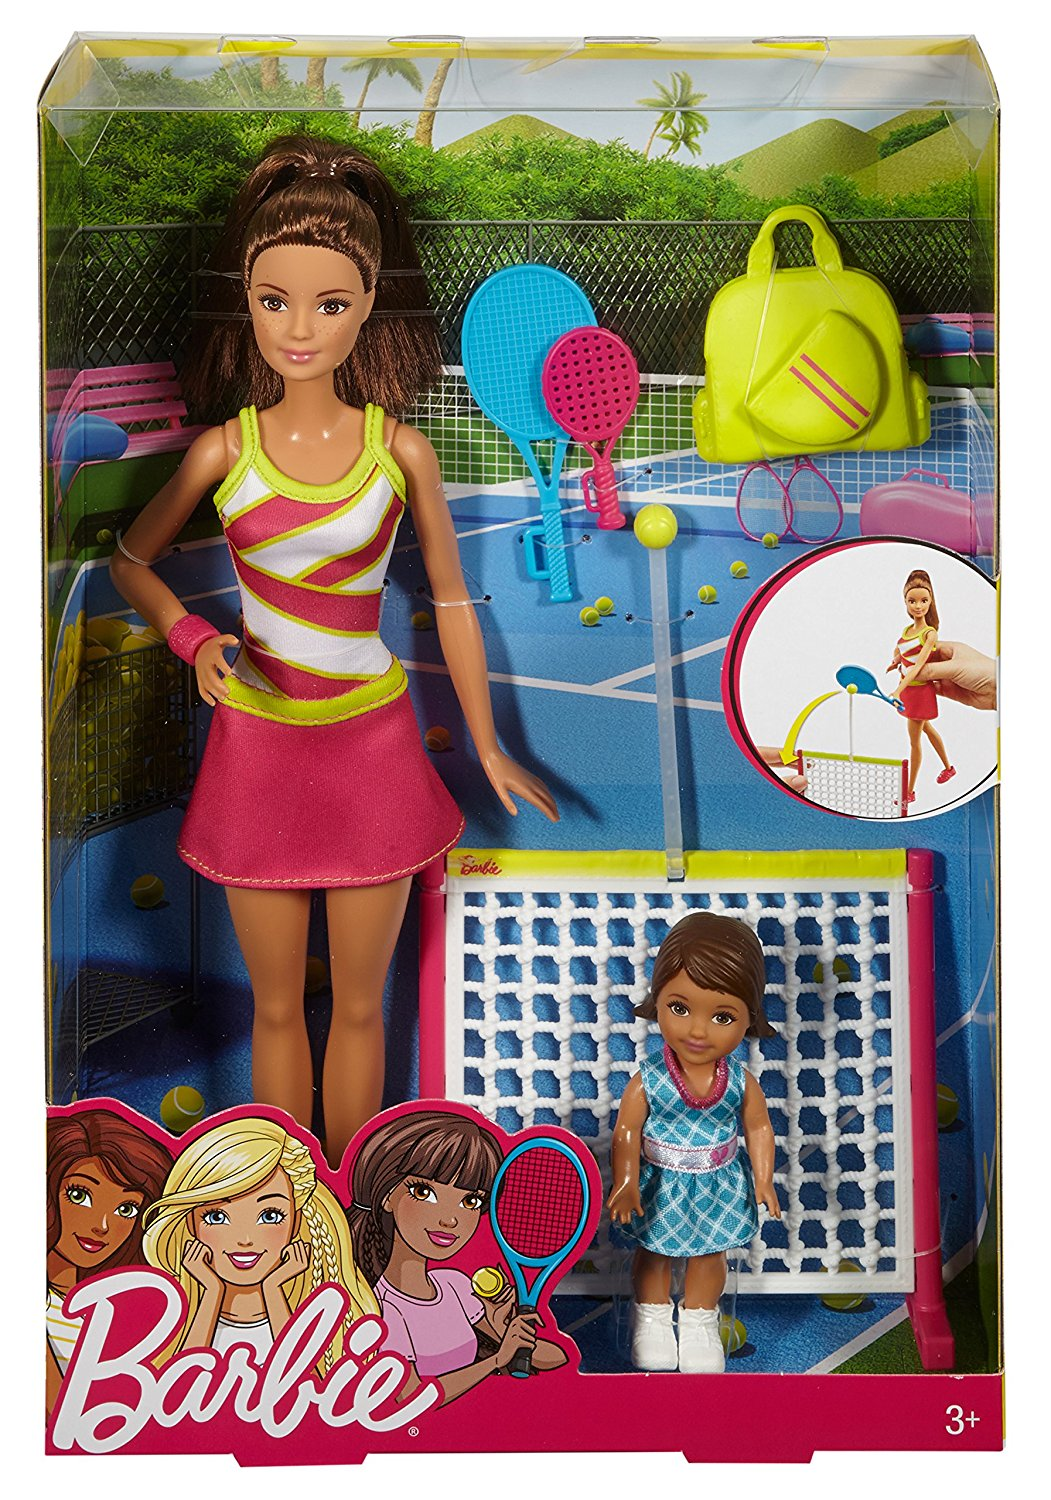 Кукла Барби брюнетка тренер по теннису Barbie Careers Tennis Coach